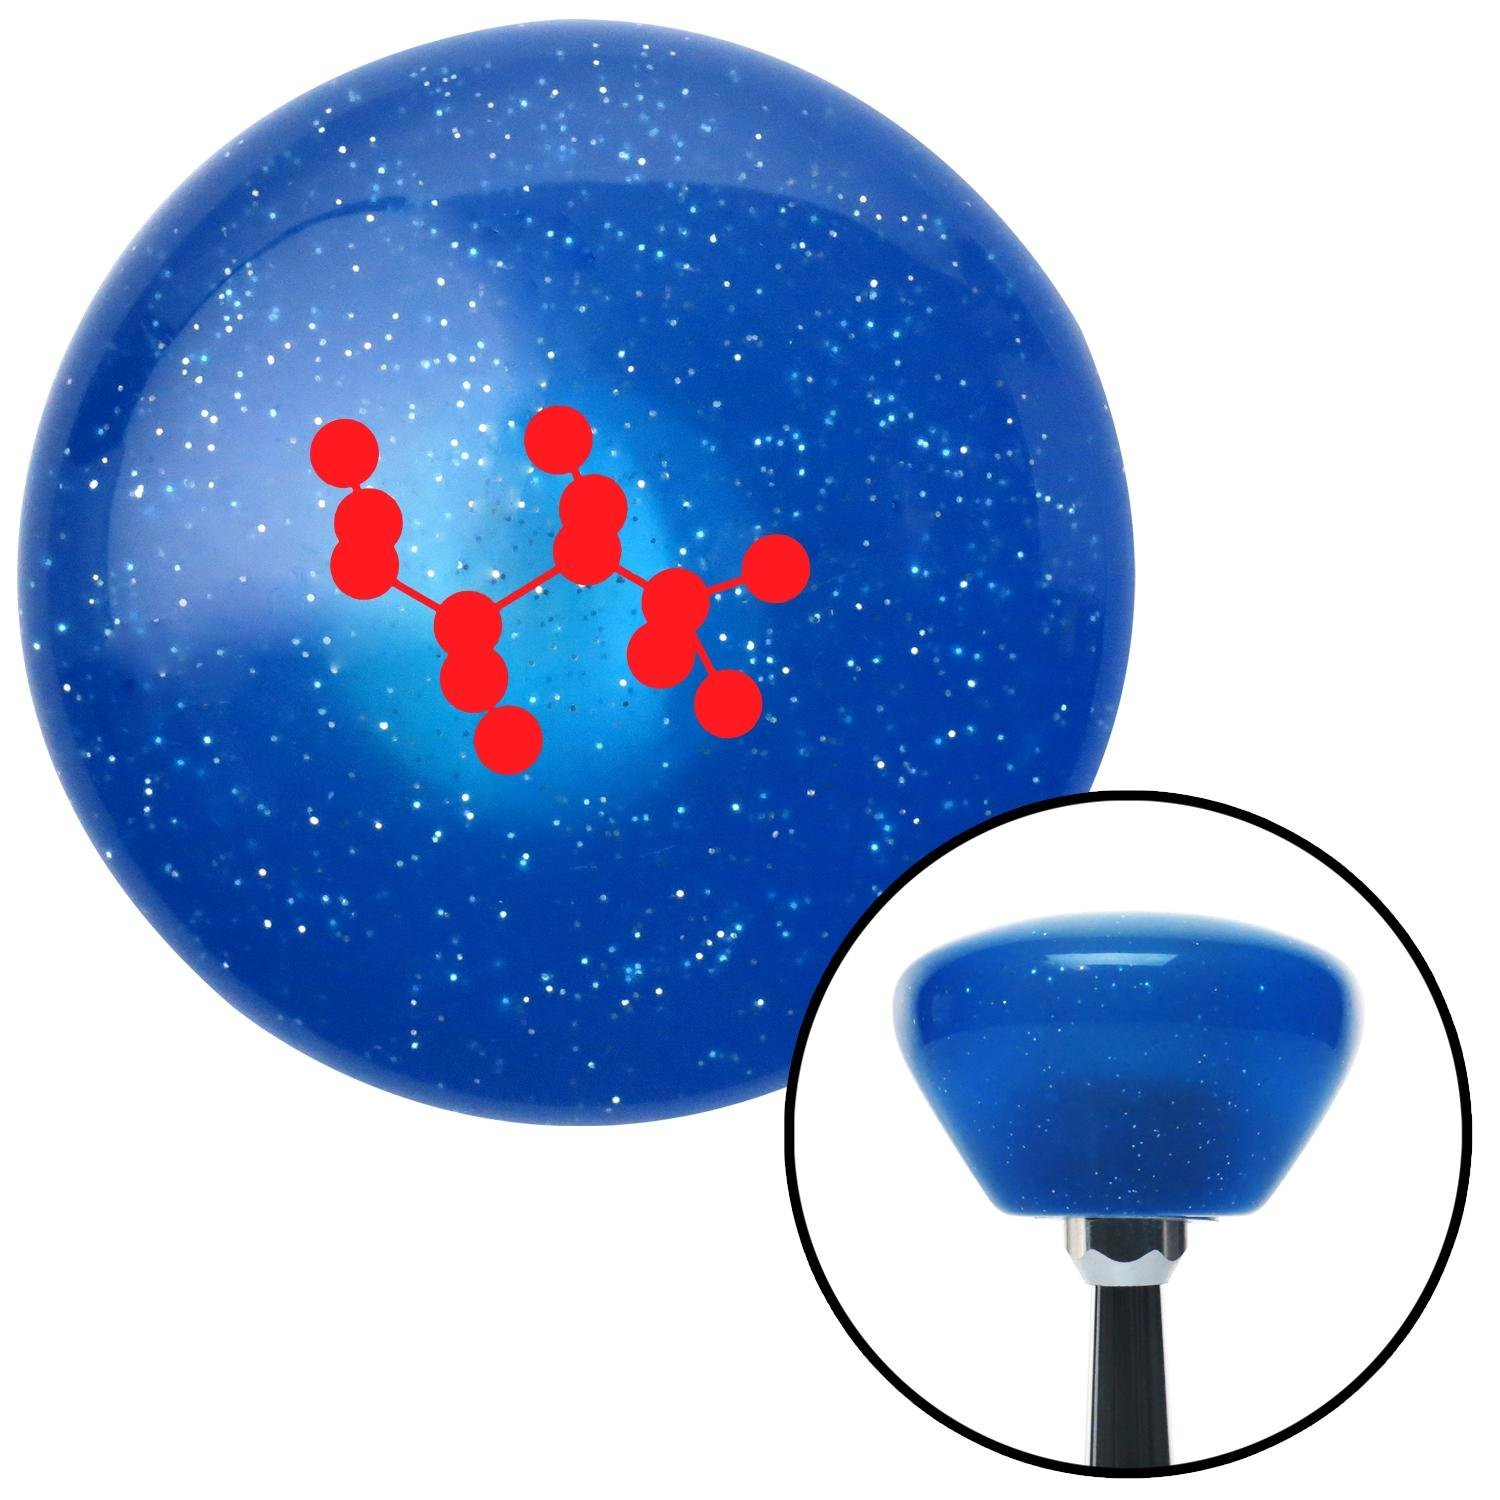 Red Molecule Structure American Shifter 187599 Blue Retro Metal Flake Shift Knob with M16 x 1.5 Insert